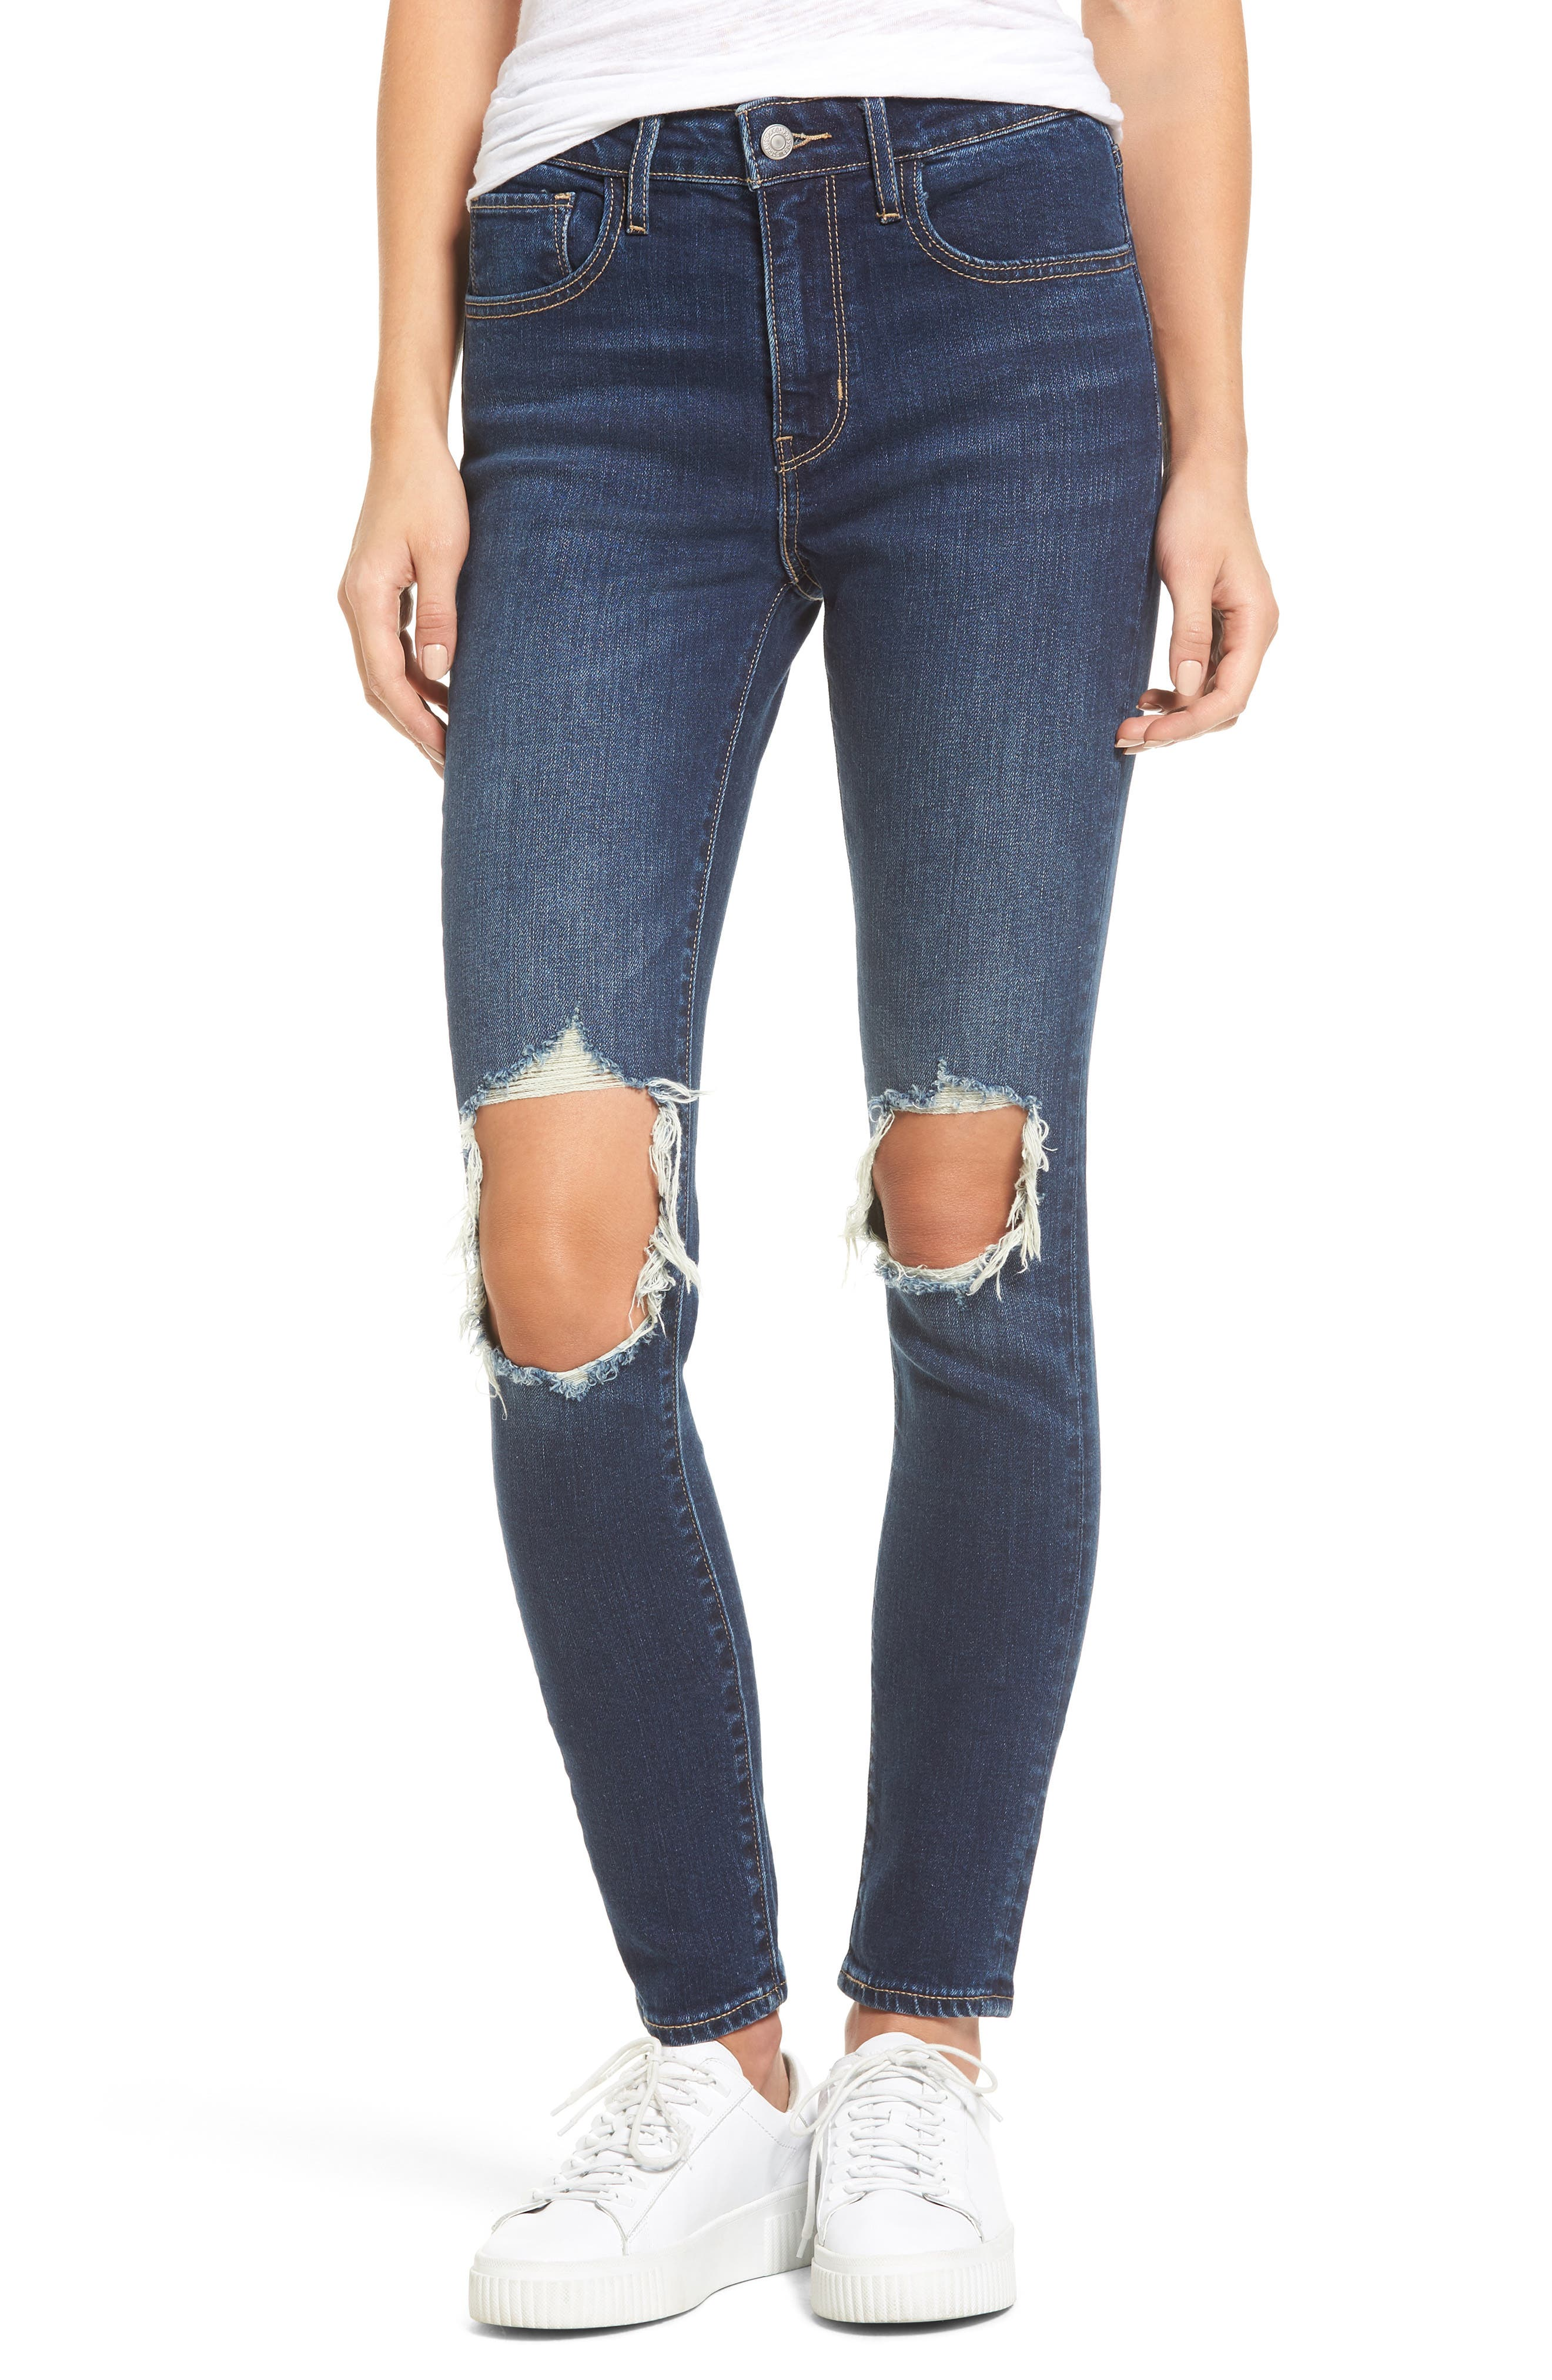 721 Ripped High Waist Skinny Jeans,                             Main thumbnail 1, color,                             Rough Day